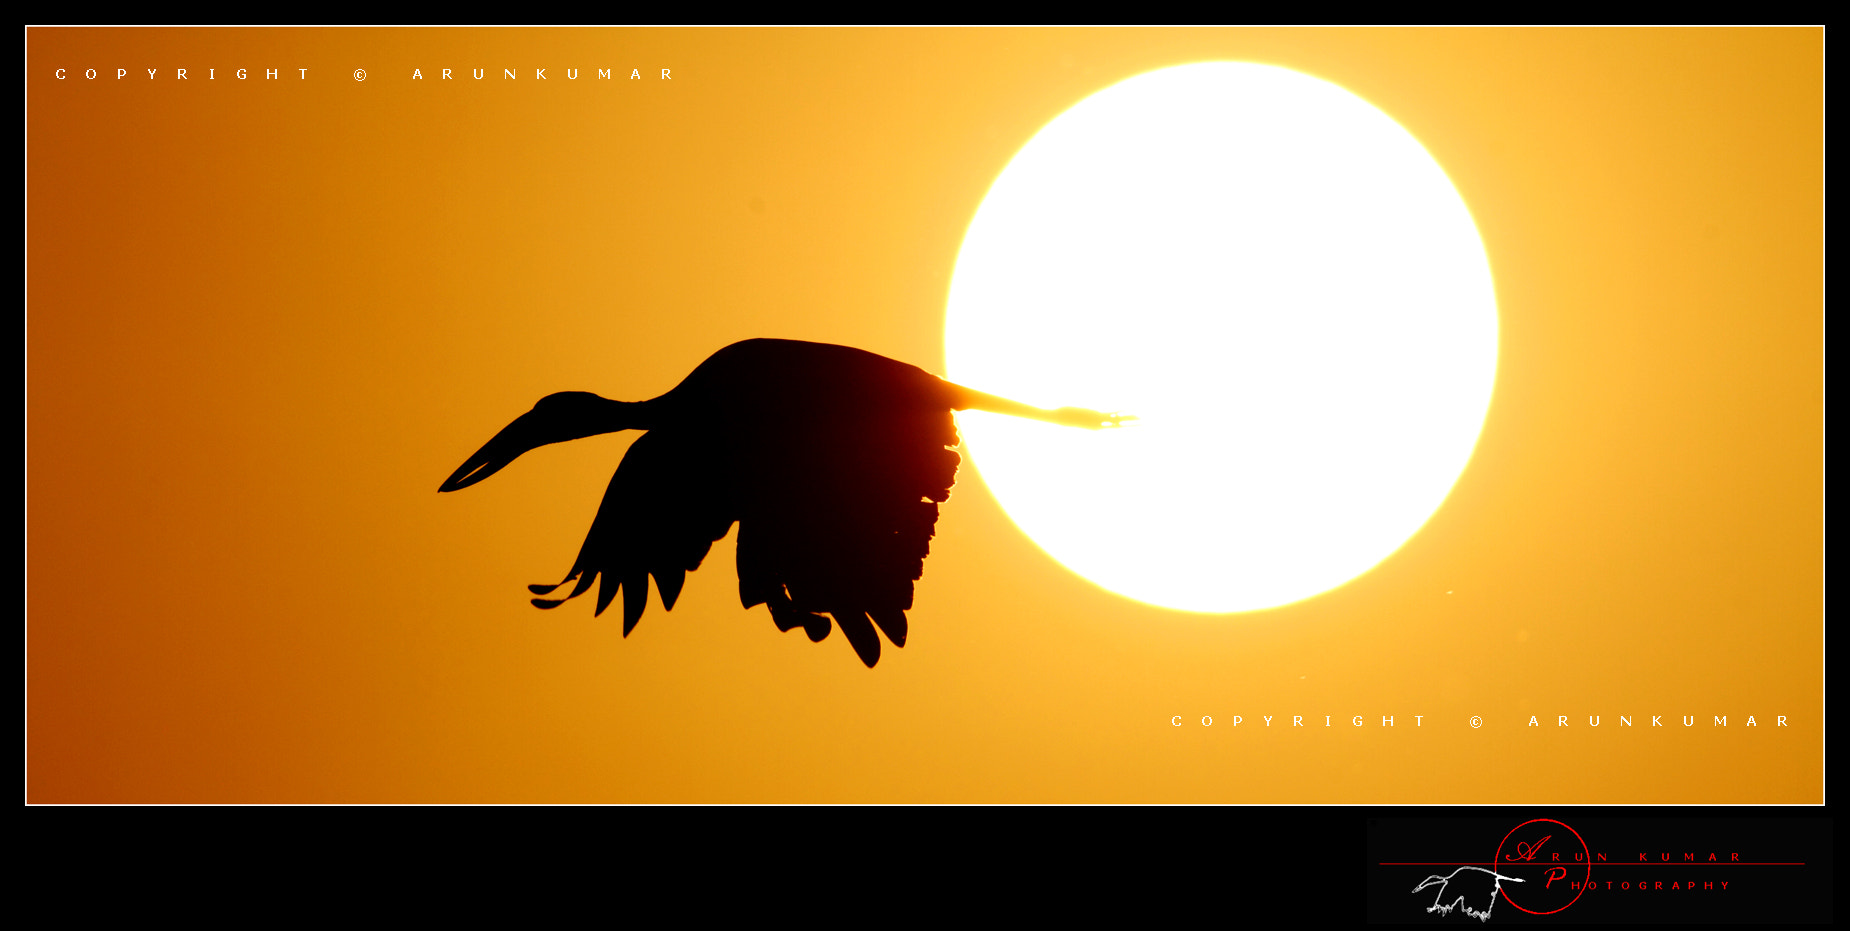 Photograph Openbill stork in flight by Arun Kumar on 500px